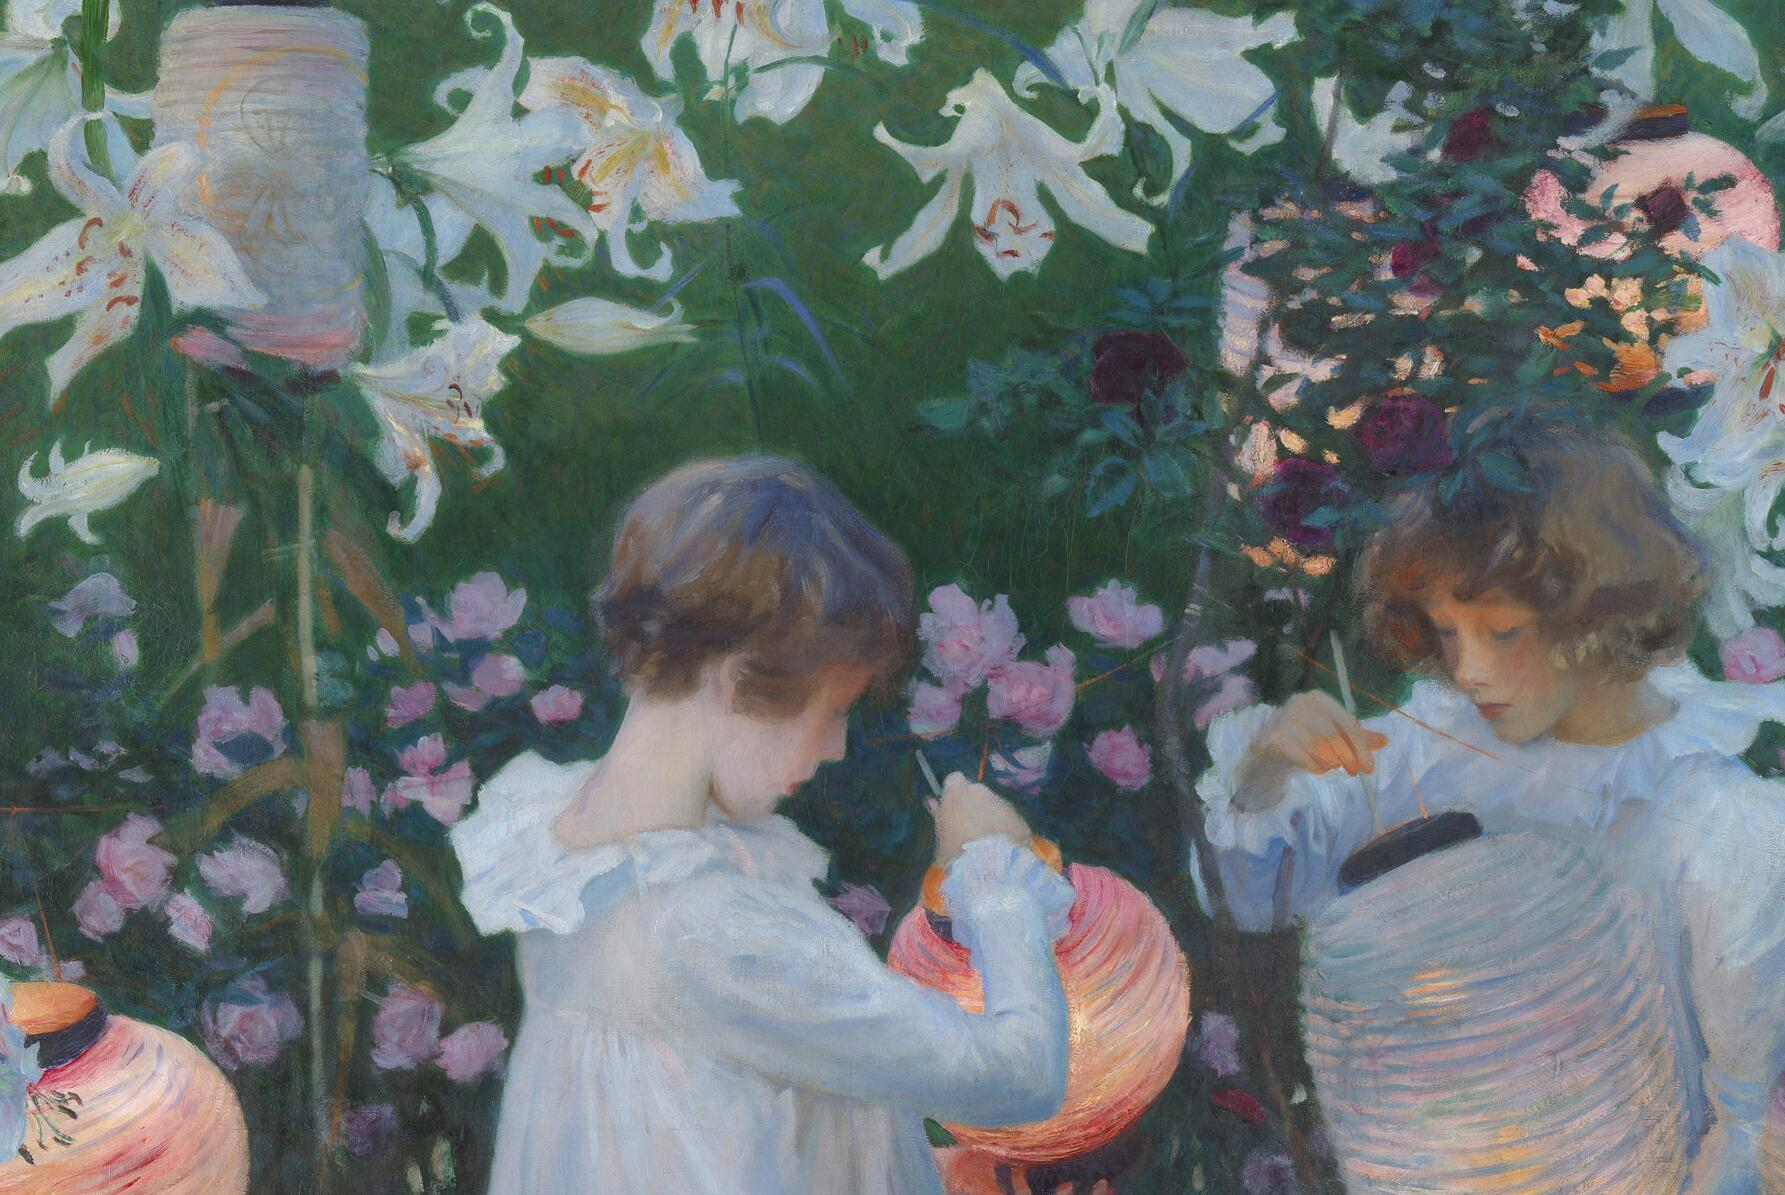 John Singer Sargent, <i>Carnation, Lily, Lily, Rose</i>, 1885–86, oil on canvas, 174 x 153.7 cm. Collection of Tate (N01615). Digital image courtesy of Tate (Creative Commons CC-BY-NC-ND (3.0 Unported)).